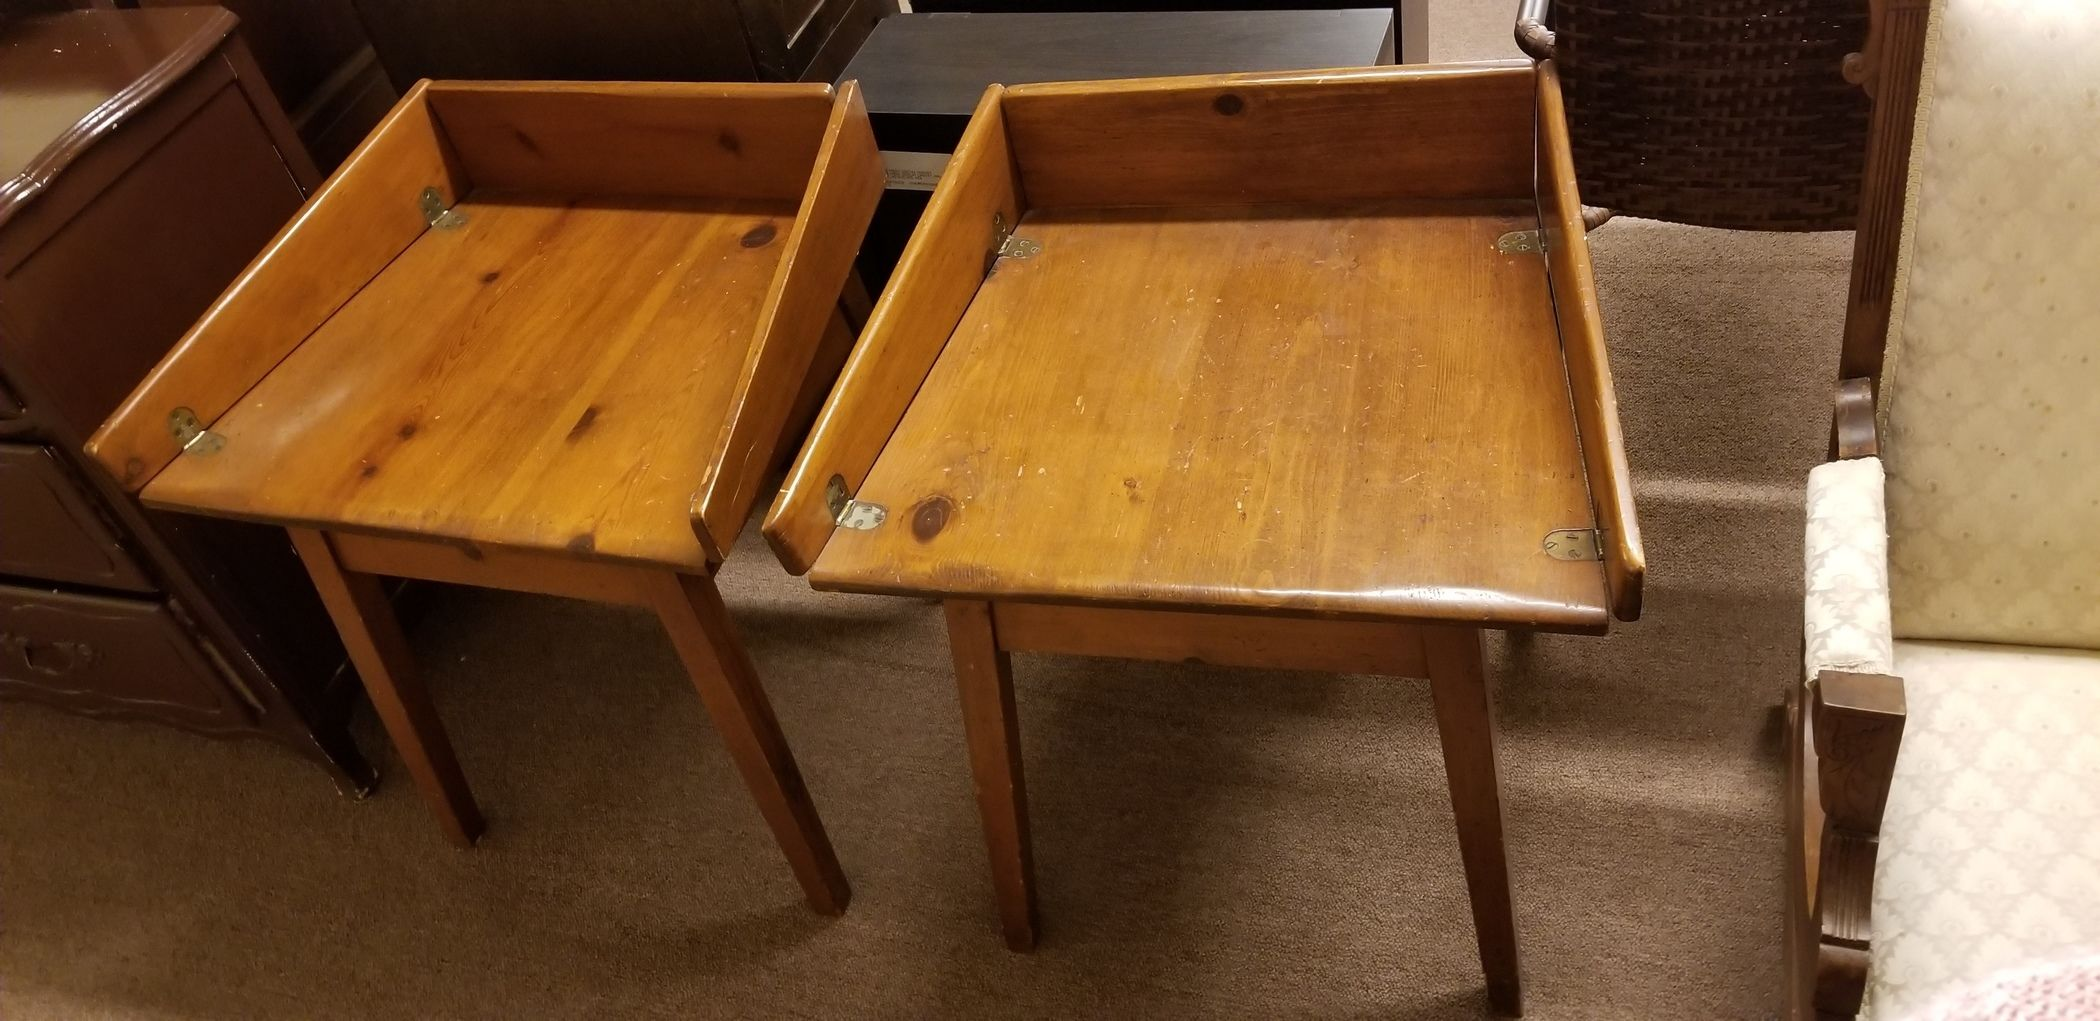 2 Pine Nightstands End Tables Delmarva Furniture Consignment